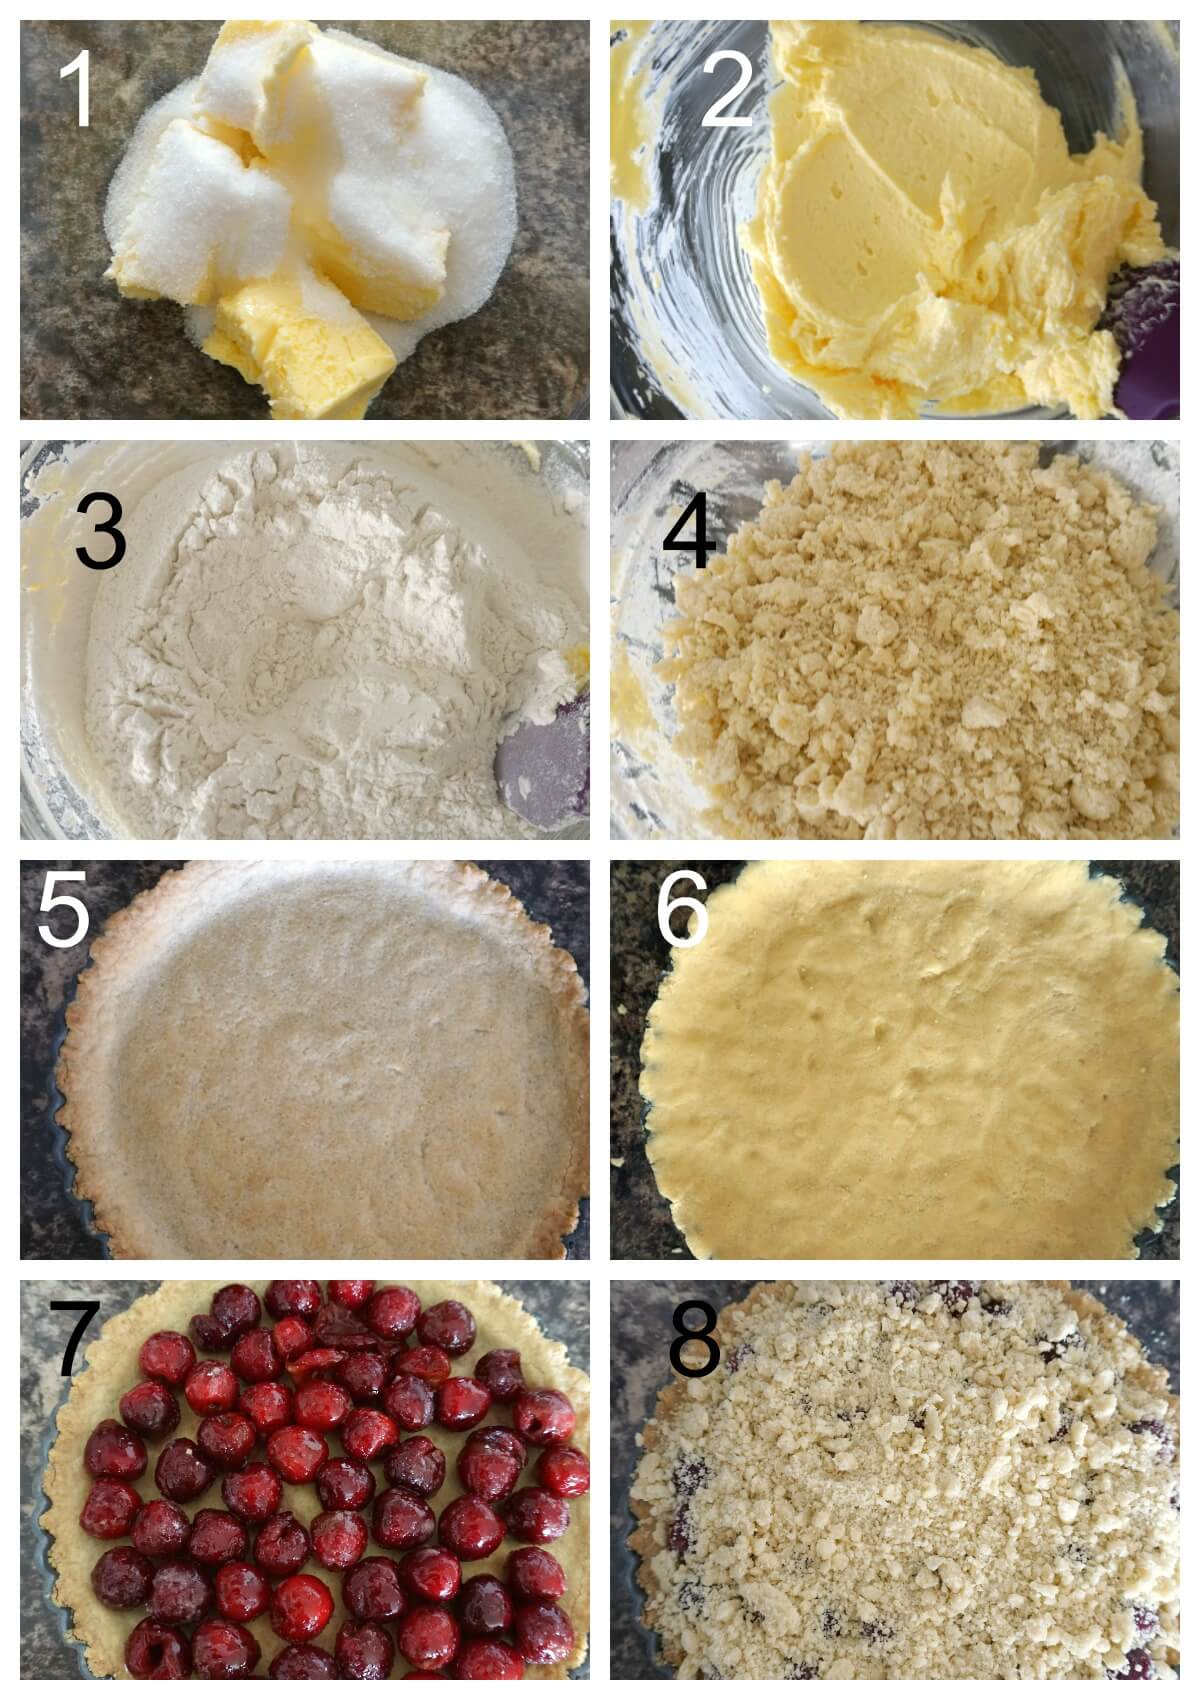 Collage of 8 photos to show how to make cherry crumb pie